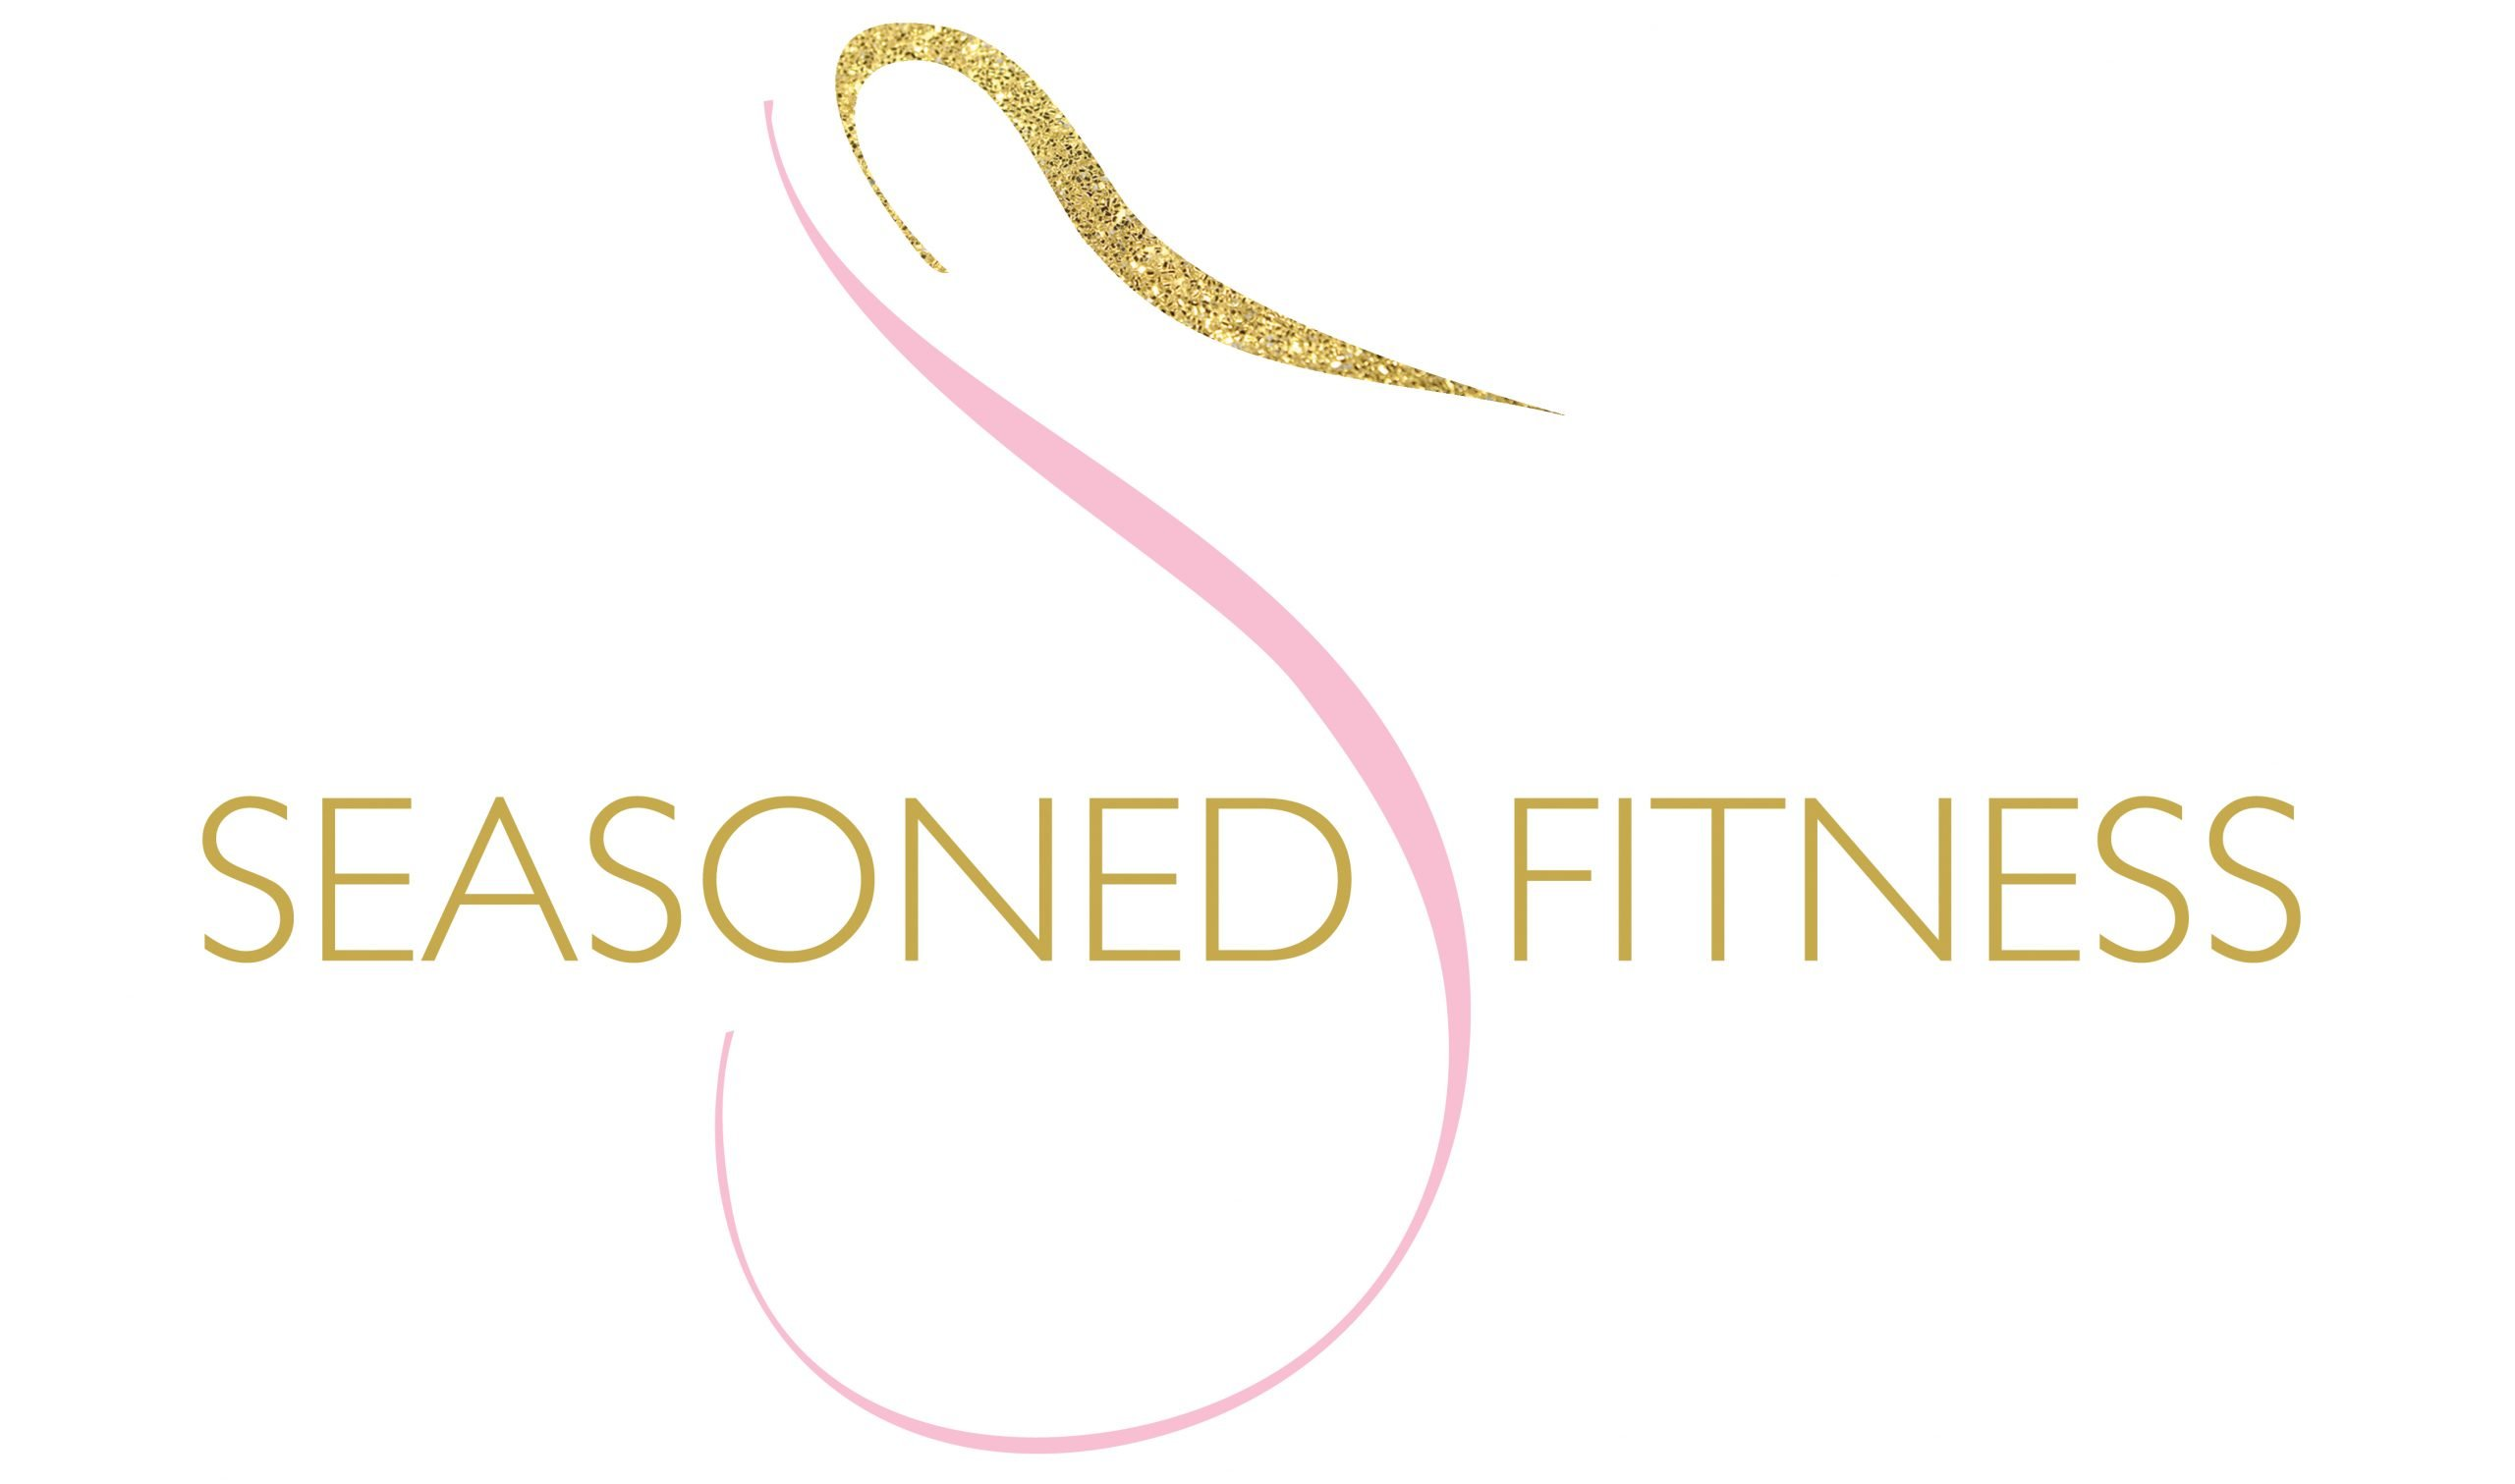 Seasoned Fitness